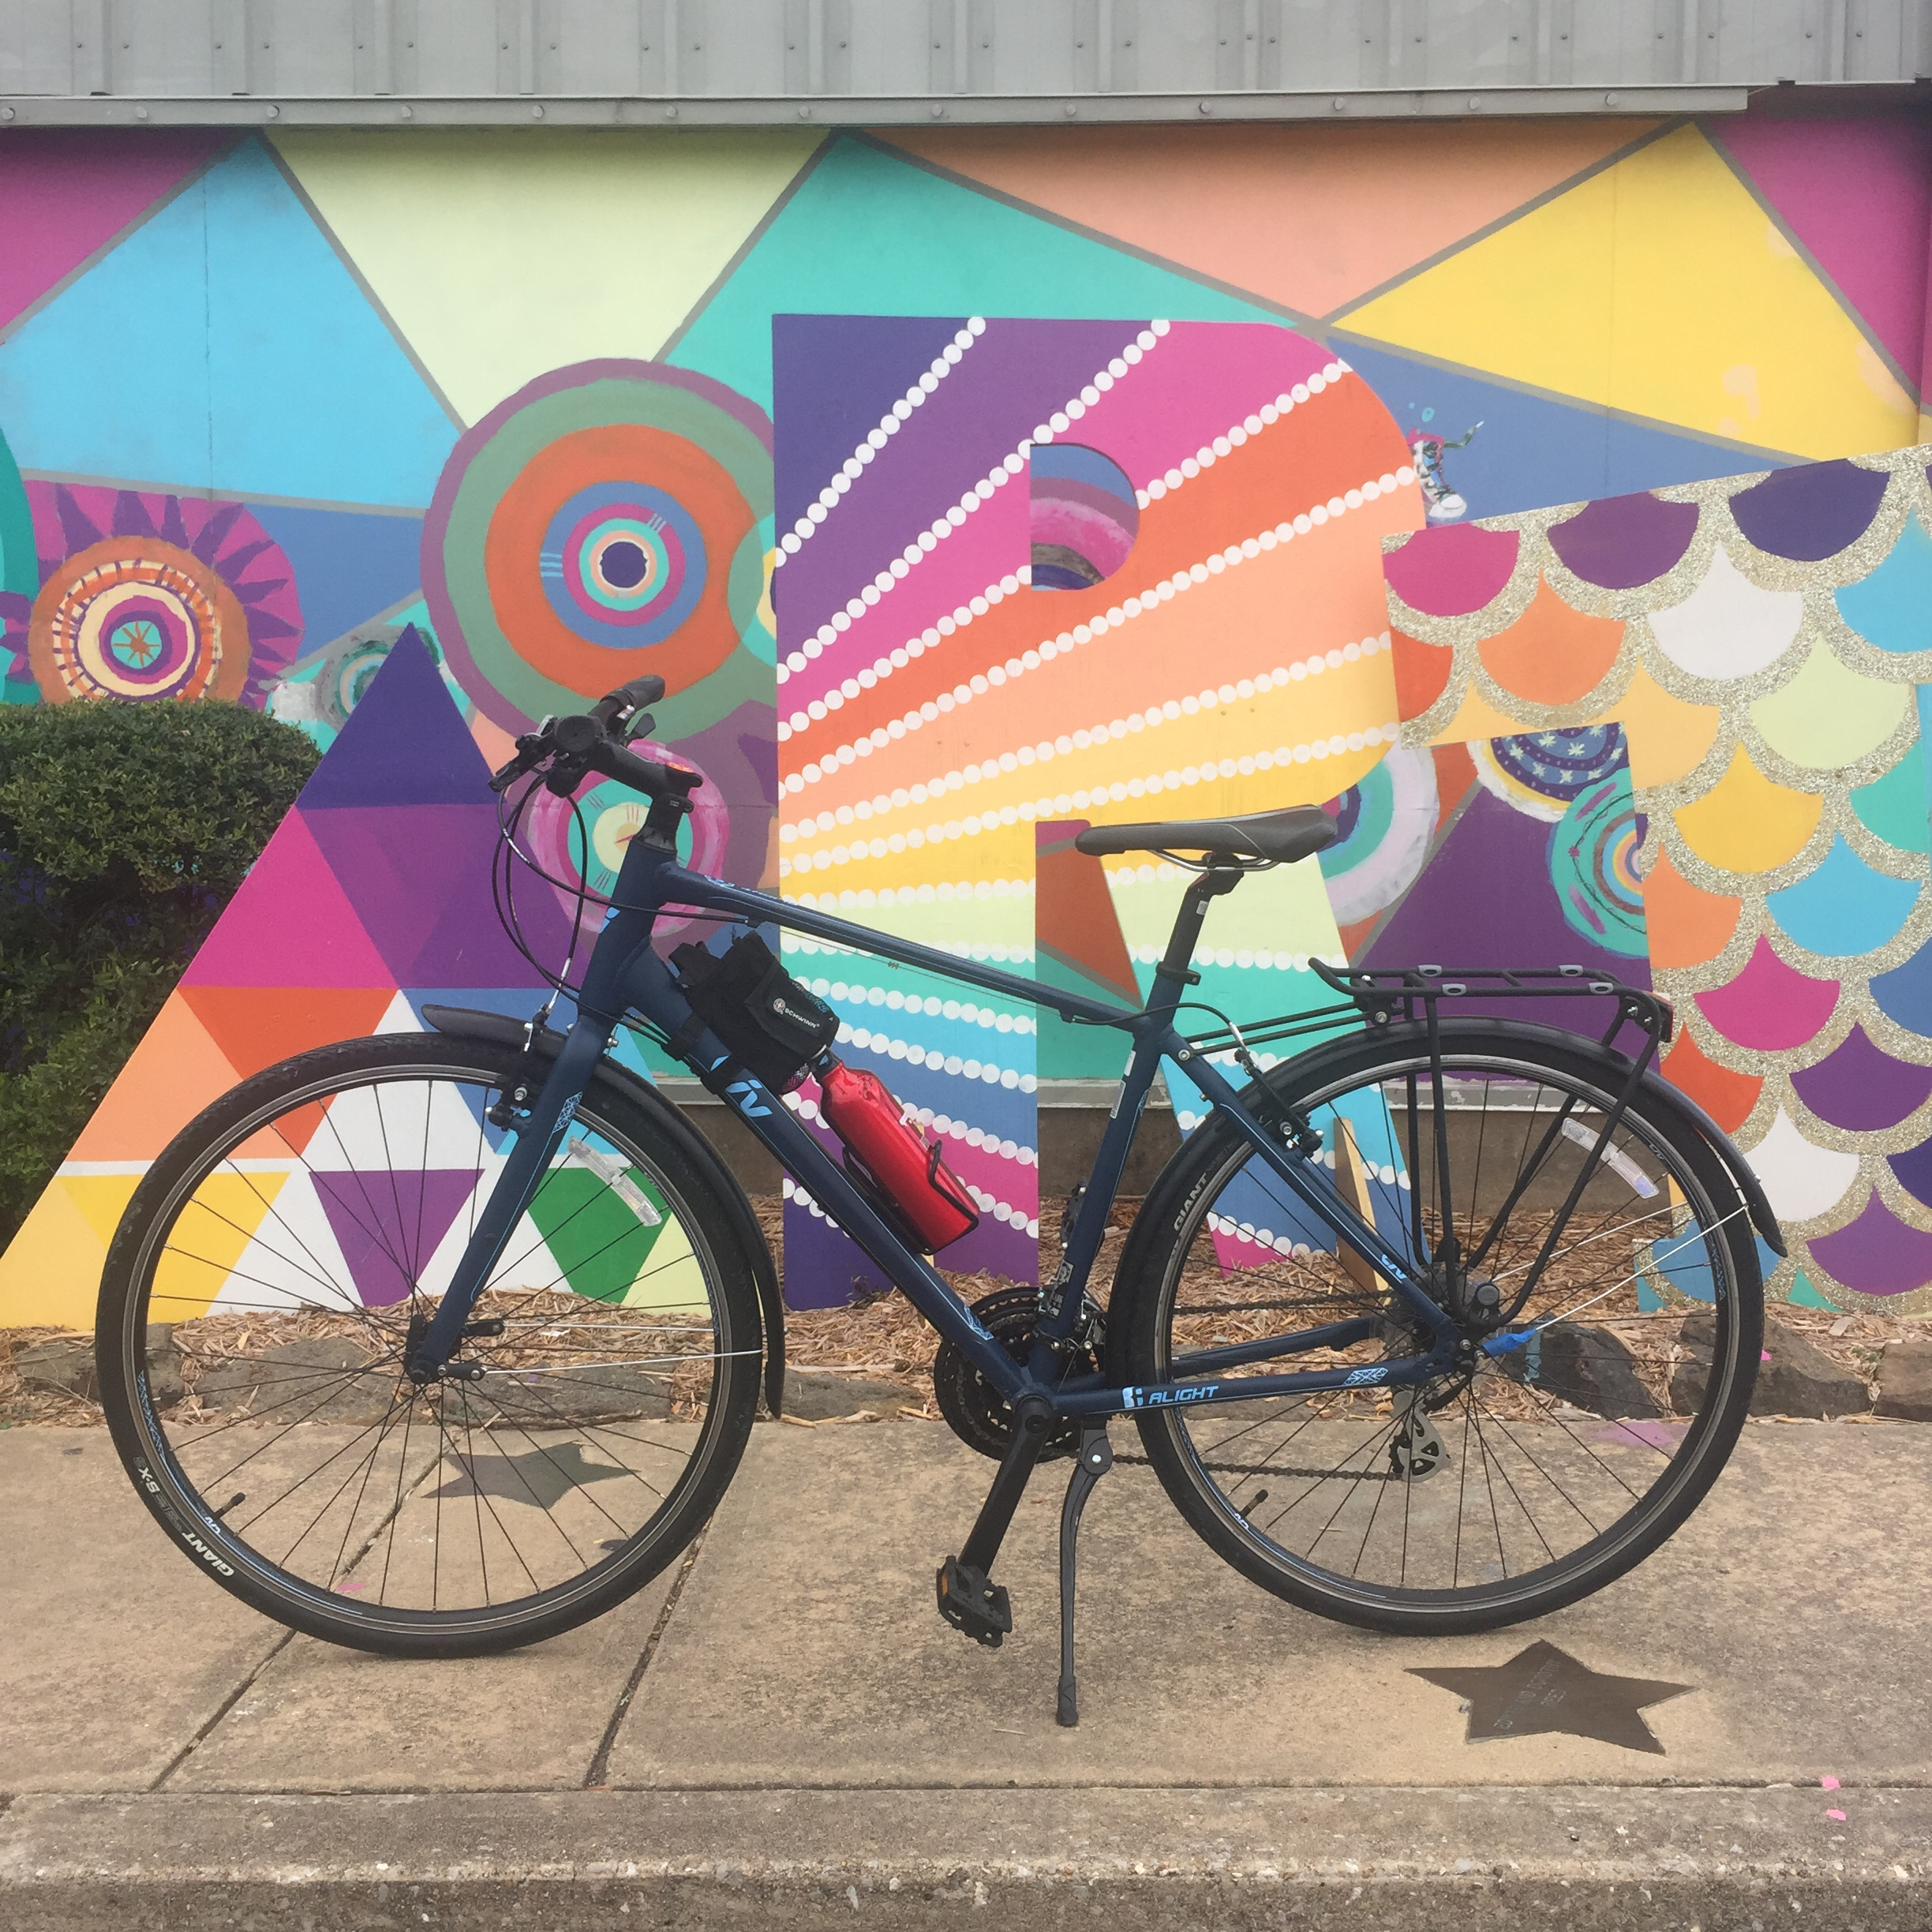 Image of bicycle in front of a public art piece at Arts Center of the Ozarks